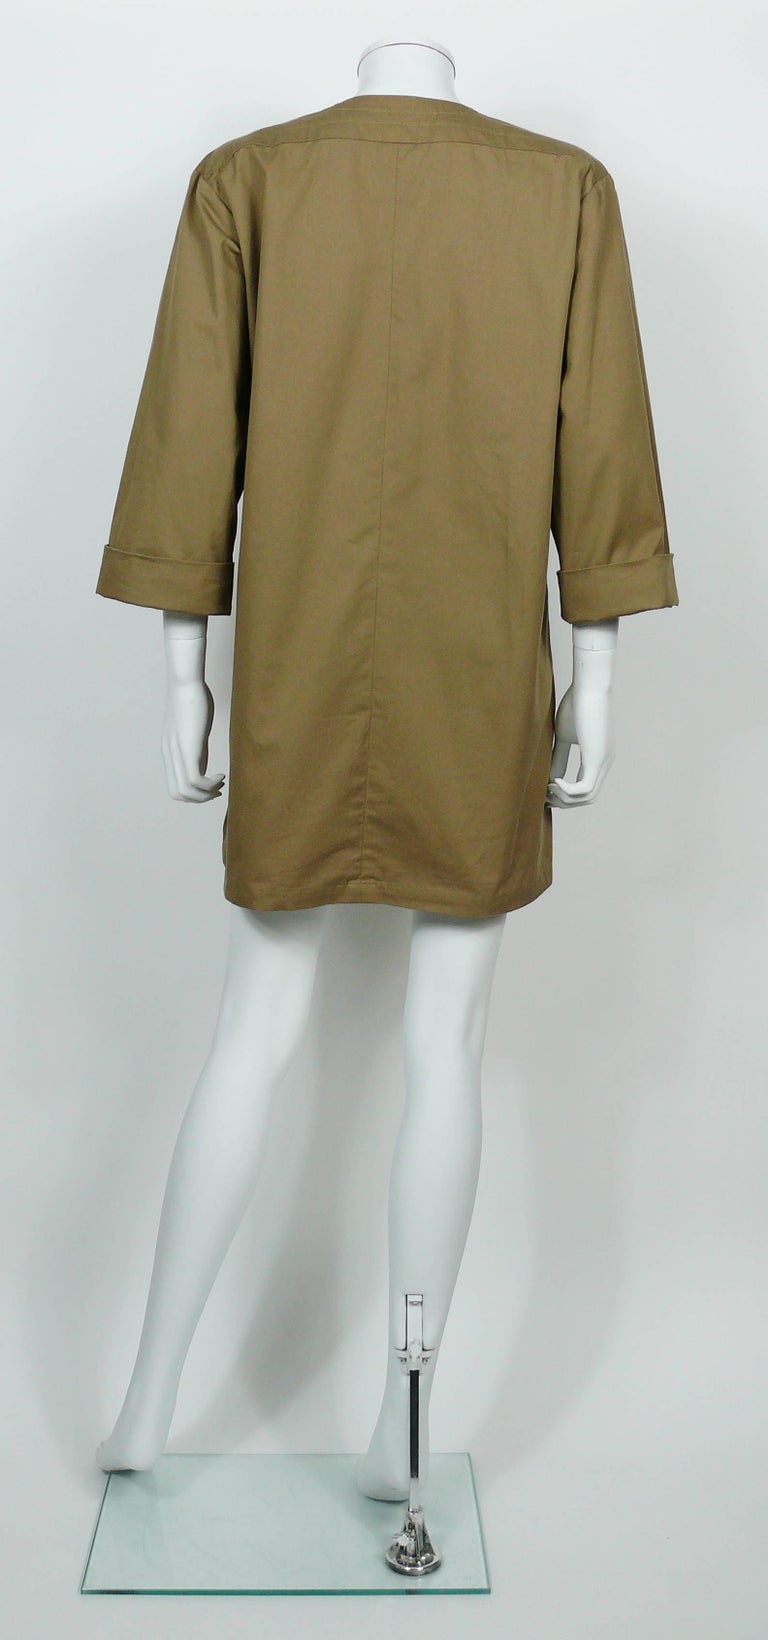 Yves Saint Laurent YSL Iconic Vintage Cotton Safari Tunic Dress, 1990s  7